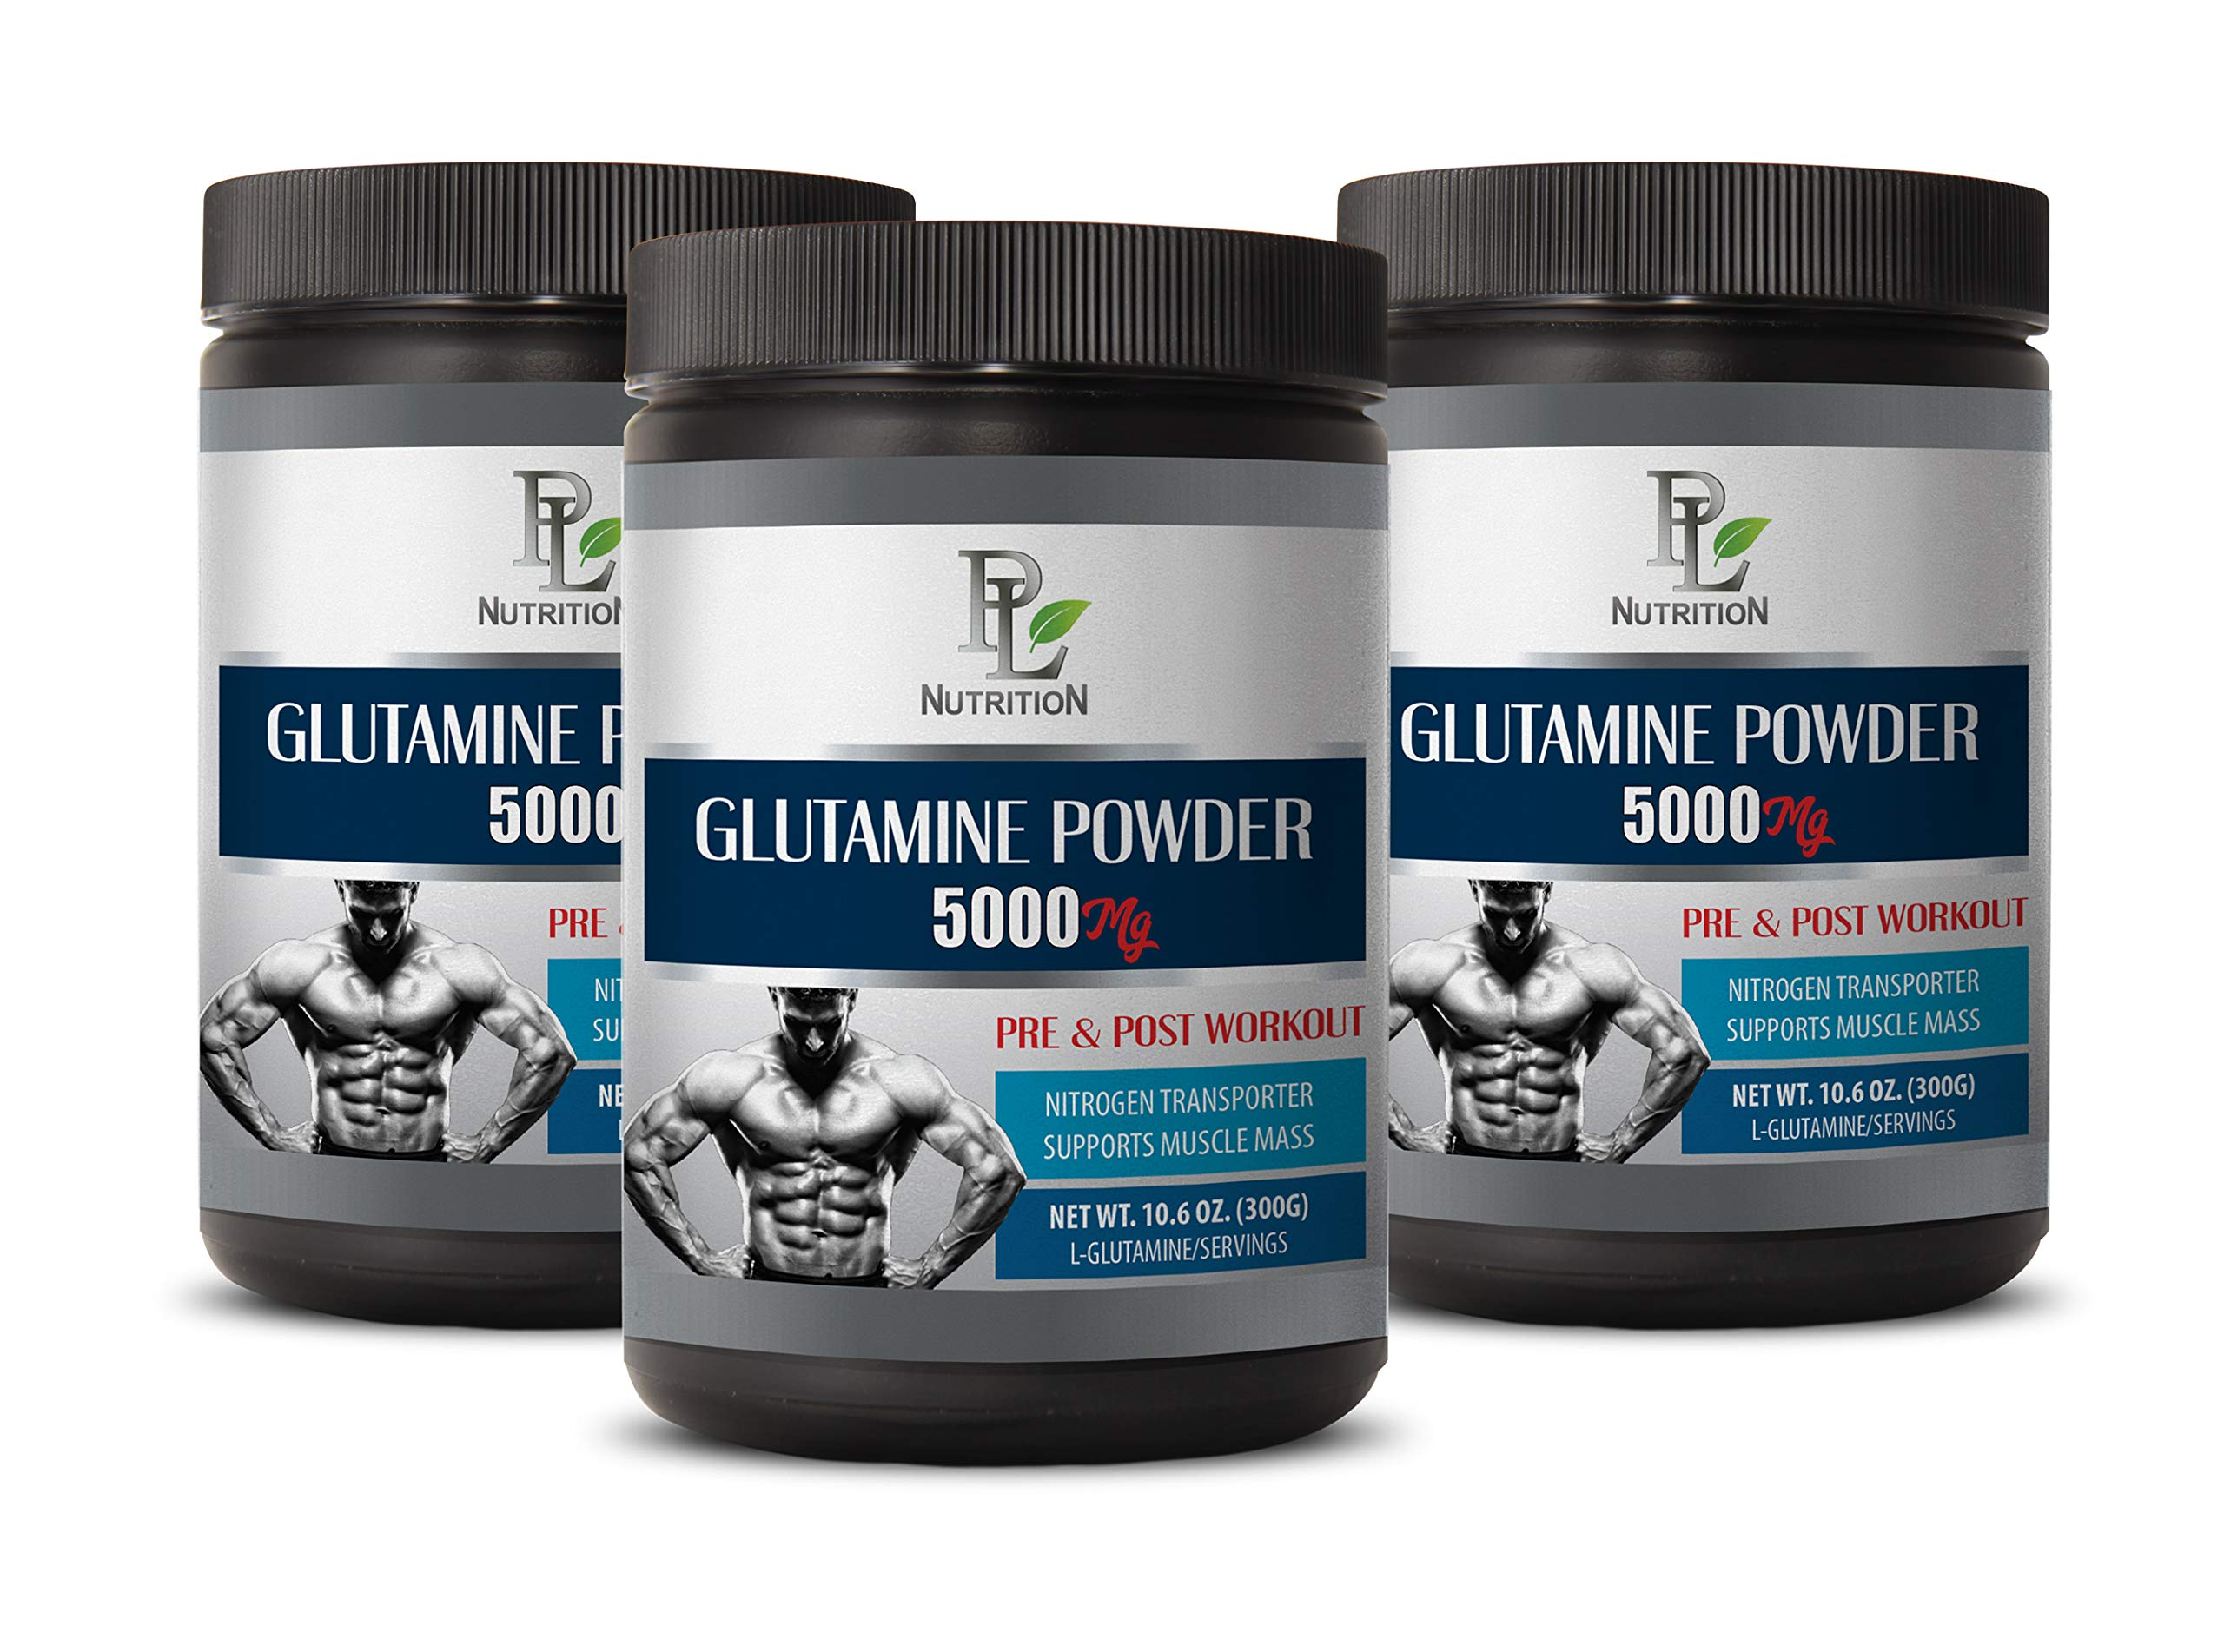 Workout Supplements for Women - L-GLUTAMINE Powder 5000 MG - PRE & Post Workout - glutamine Powder Bulk Supplements - 3 Cans 900 Grams